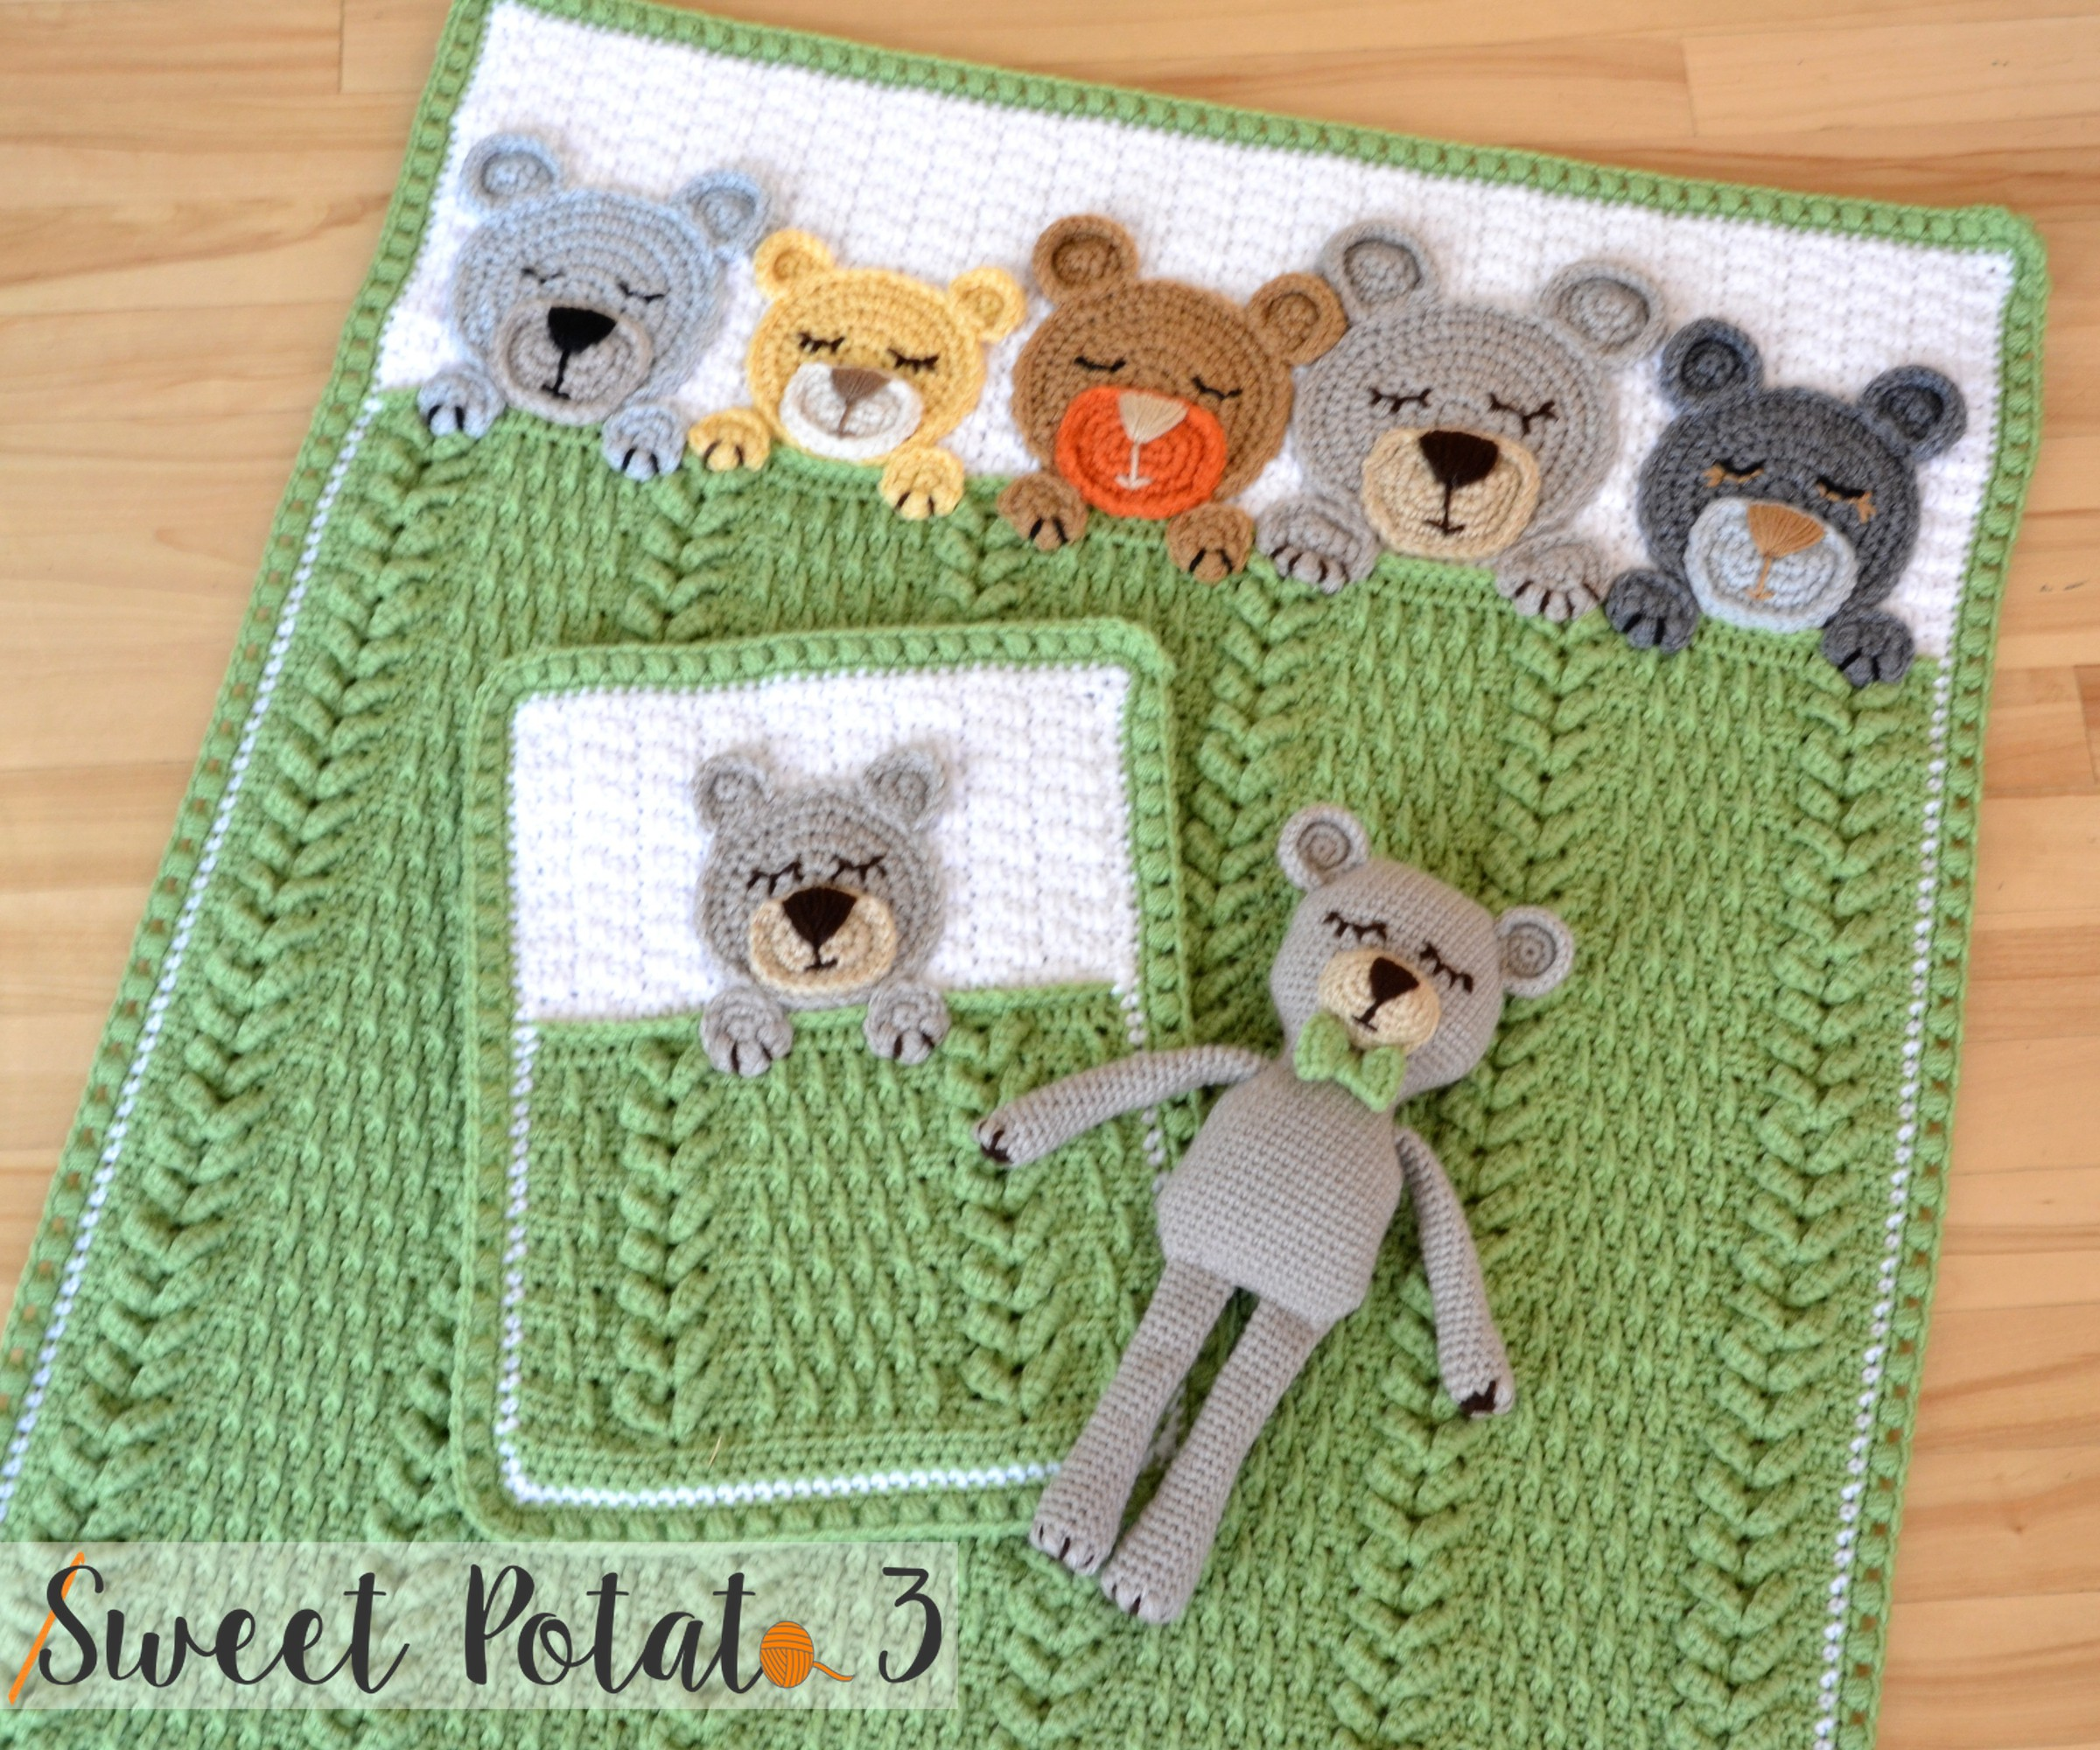 Sleep Tight Teddy Bear Set - Crochet Pattern - Sweet Potato 3